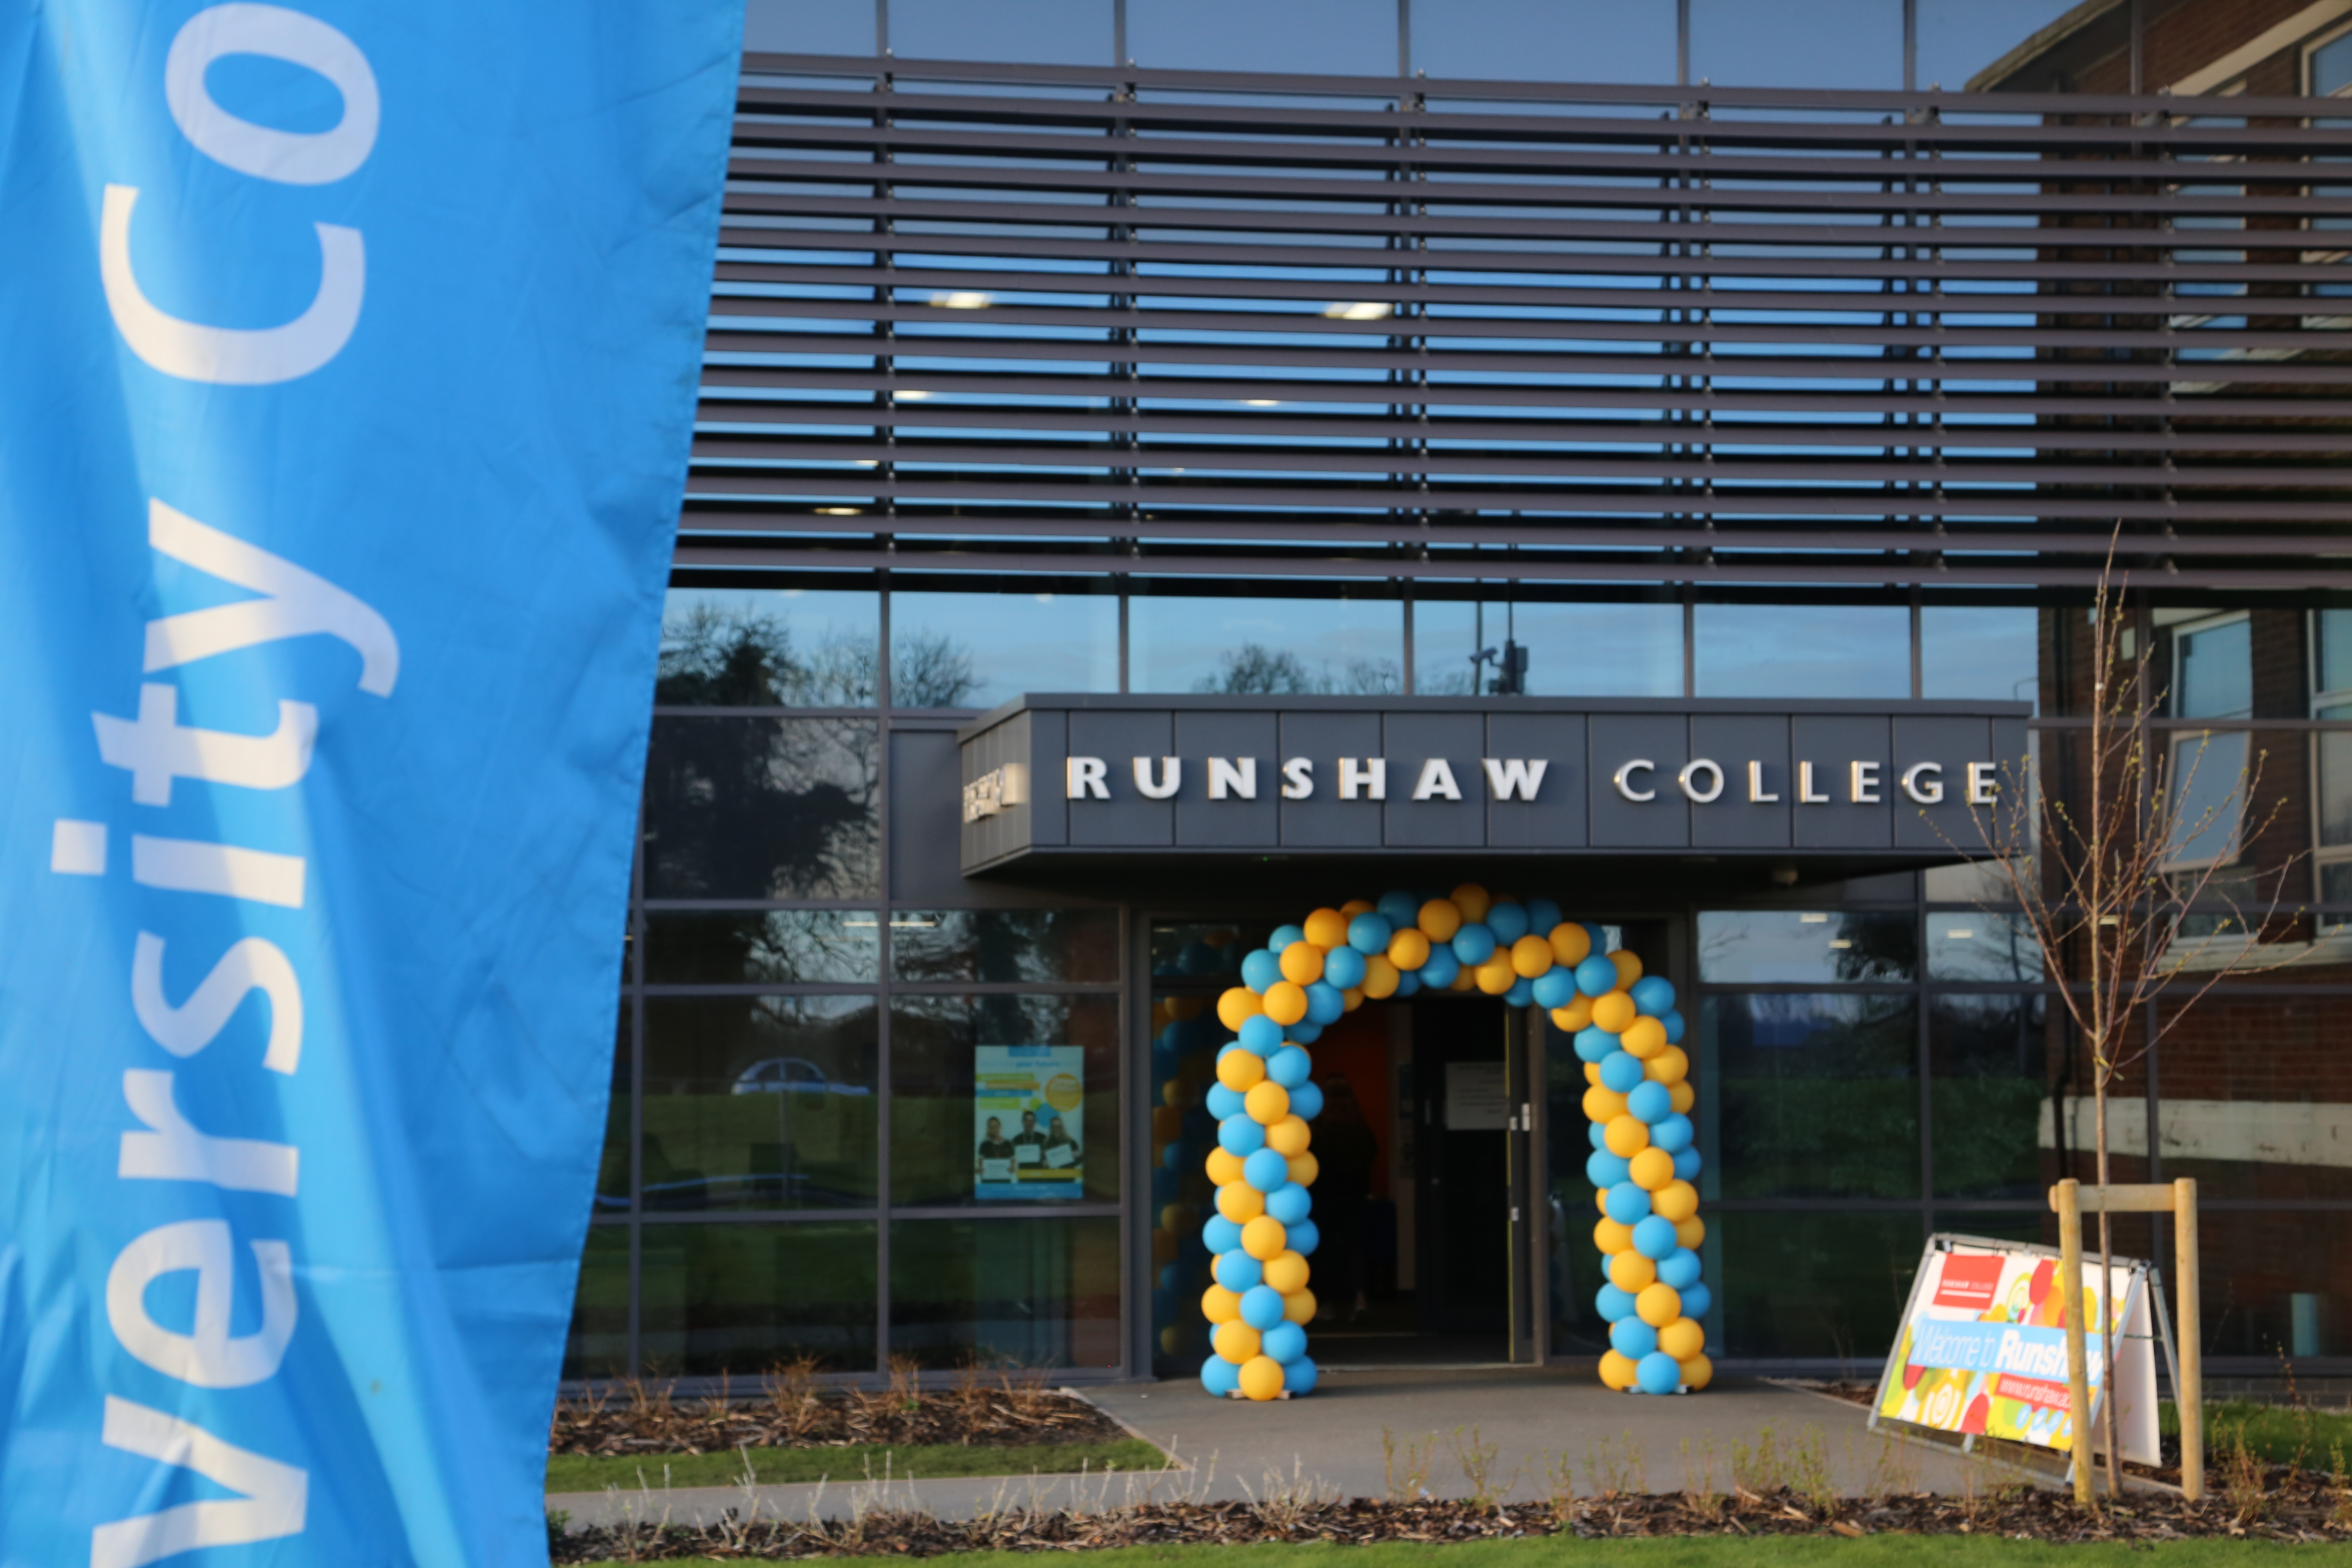 Experience Runshaw at one of our Open Events